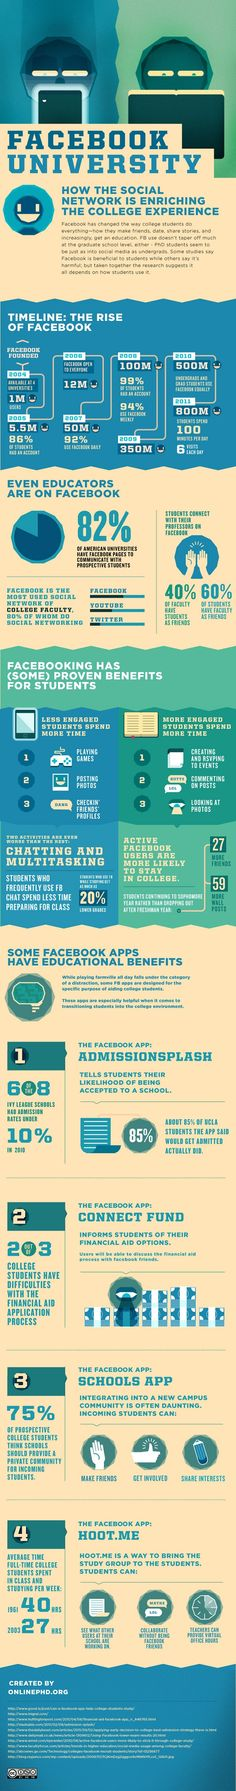 Facebook University :: How the Social Network is enriching the College Experience #infografik